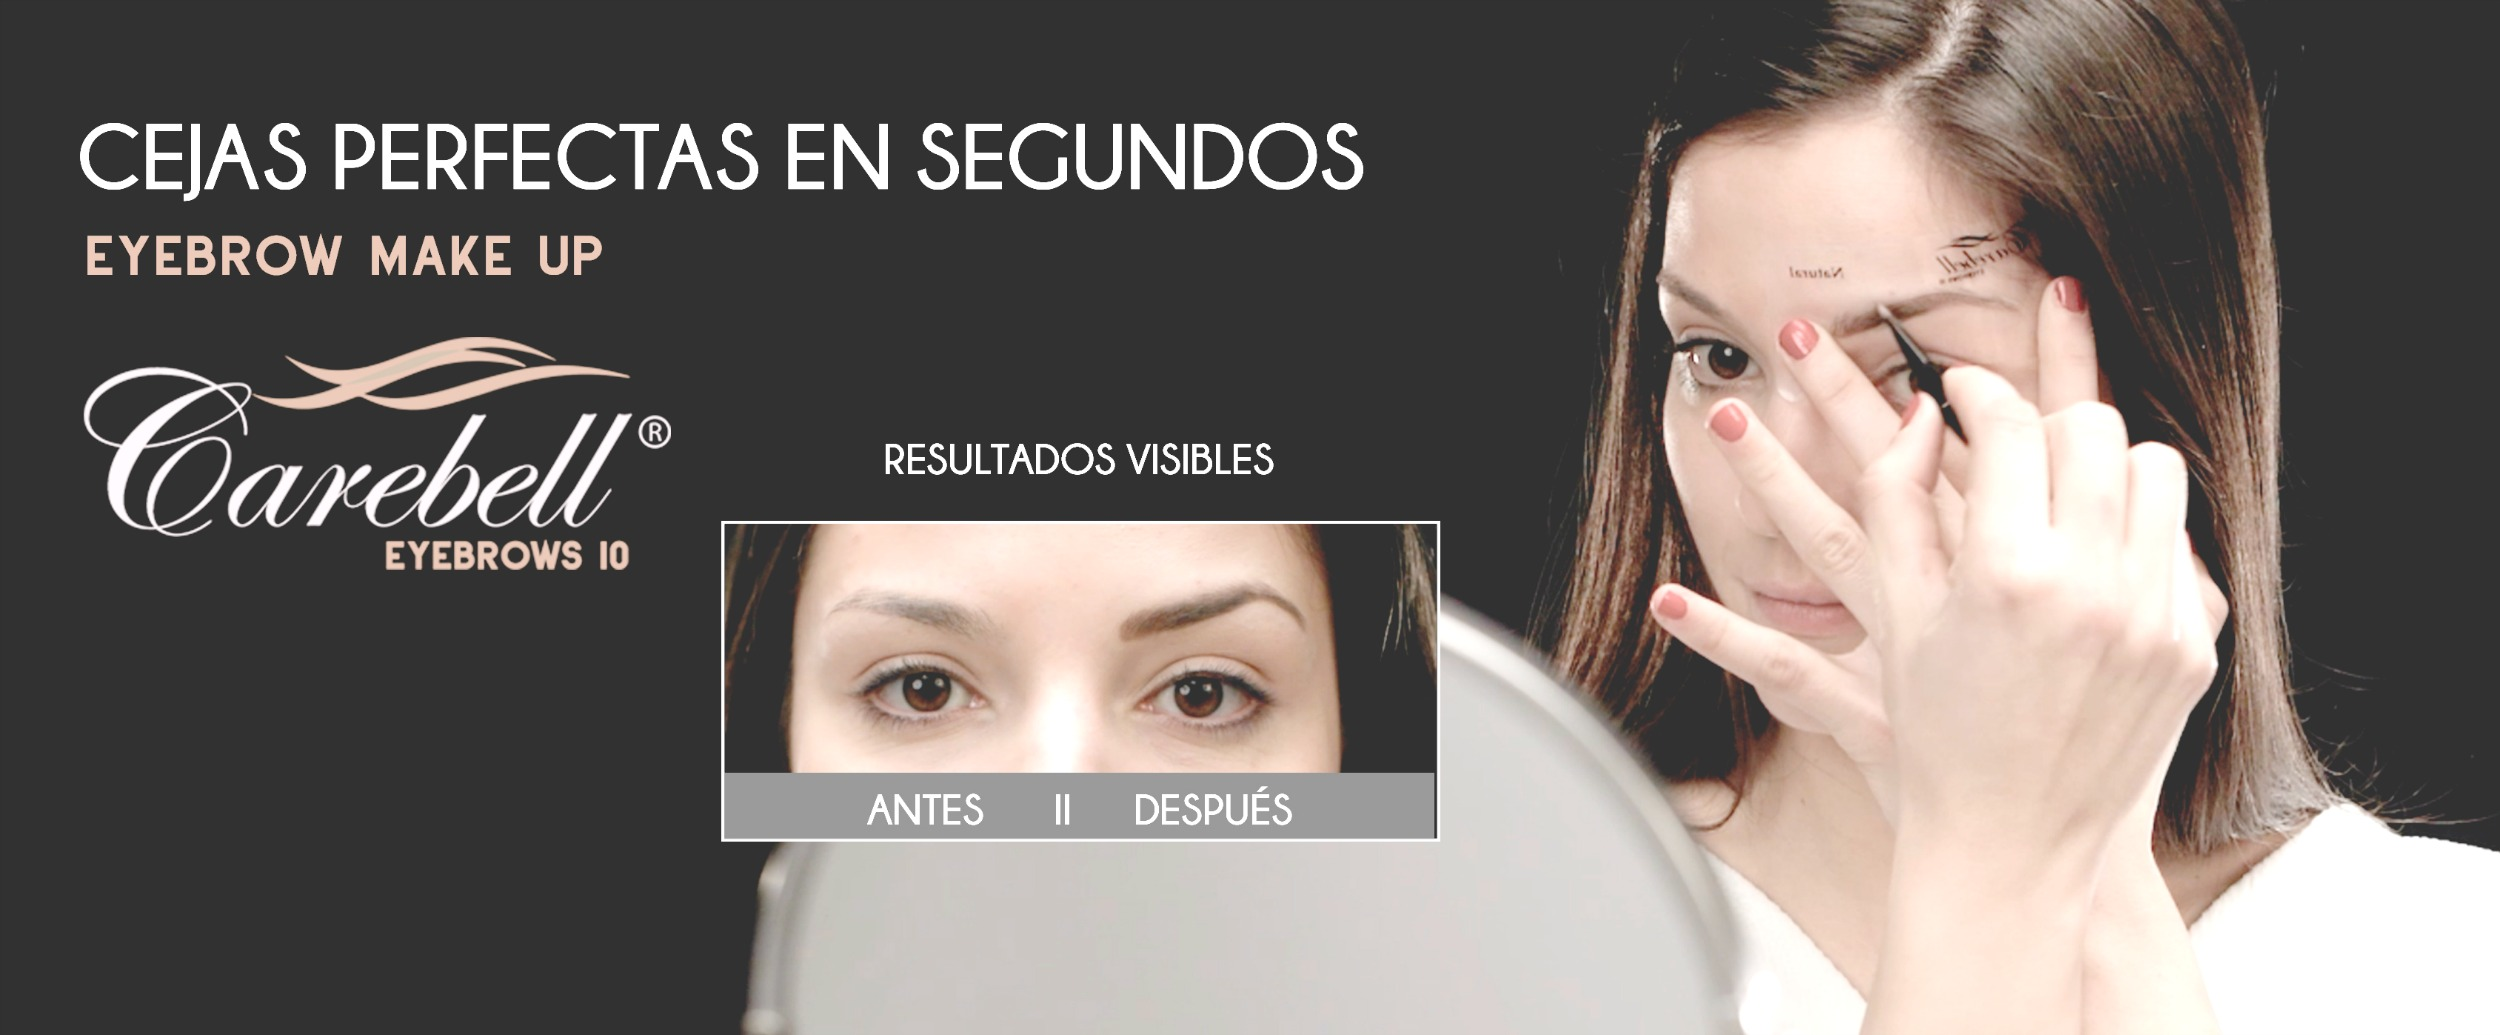 BANNER EYEBROWS10 PROVISIONAL1.jpg